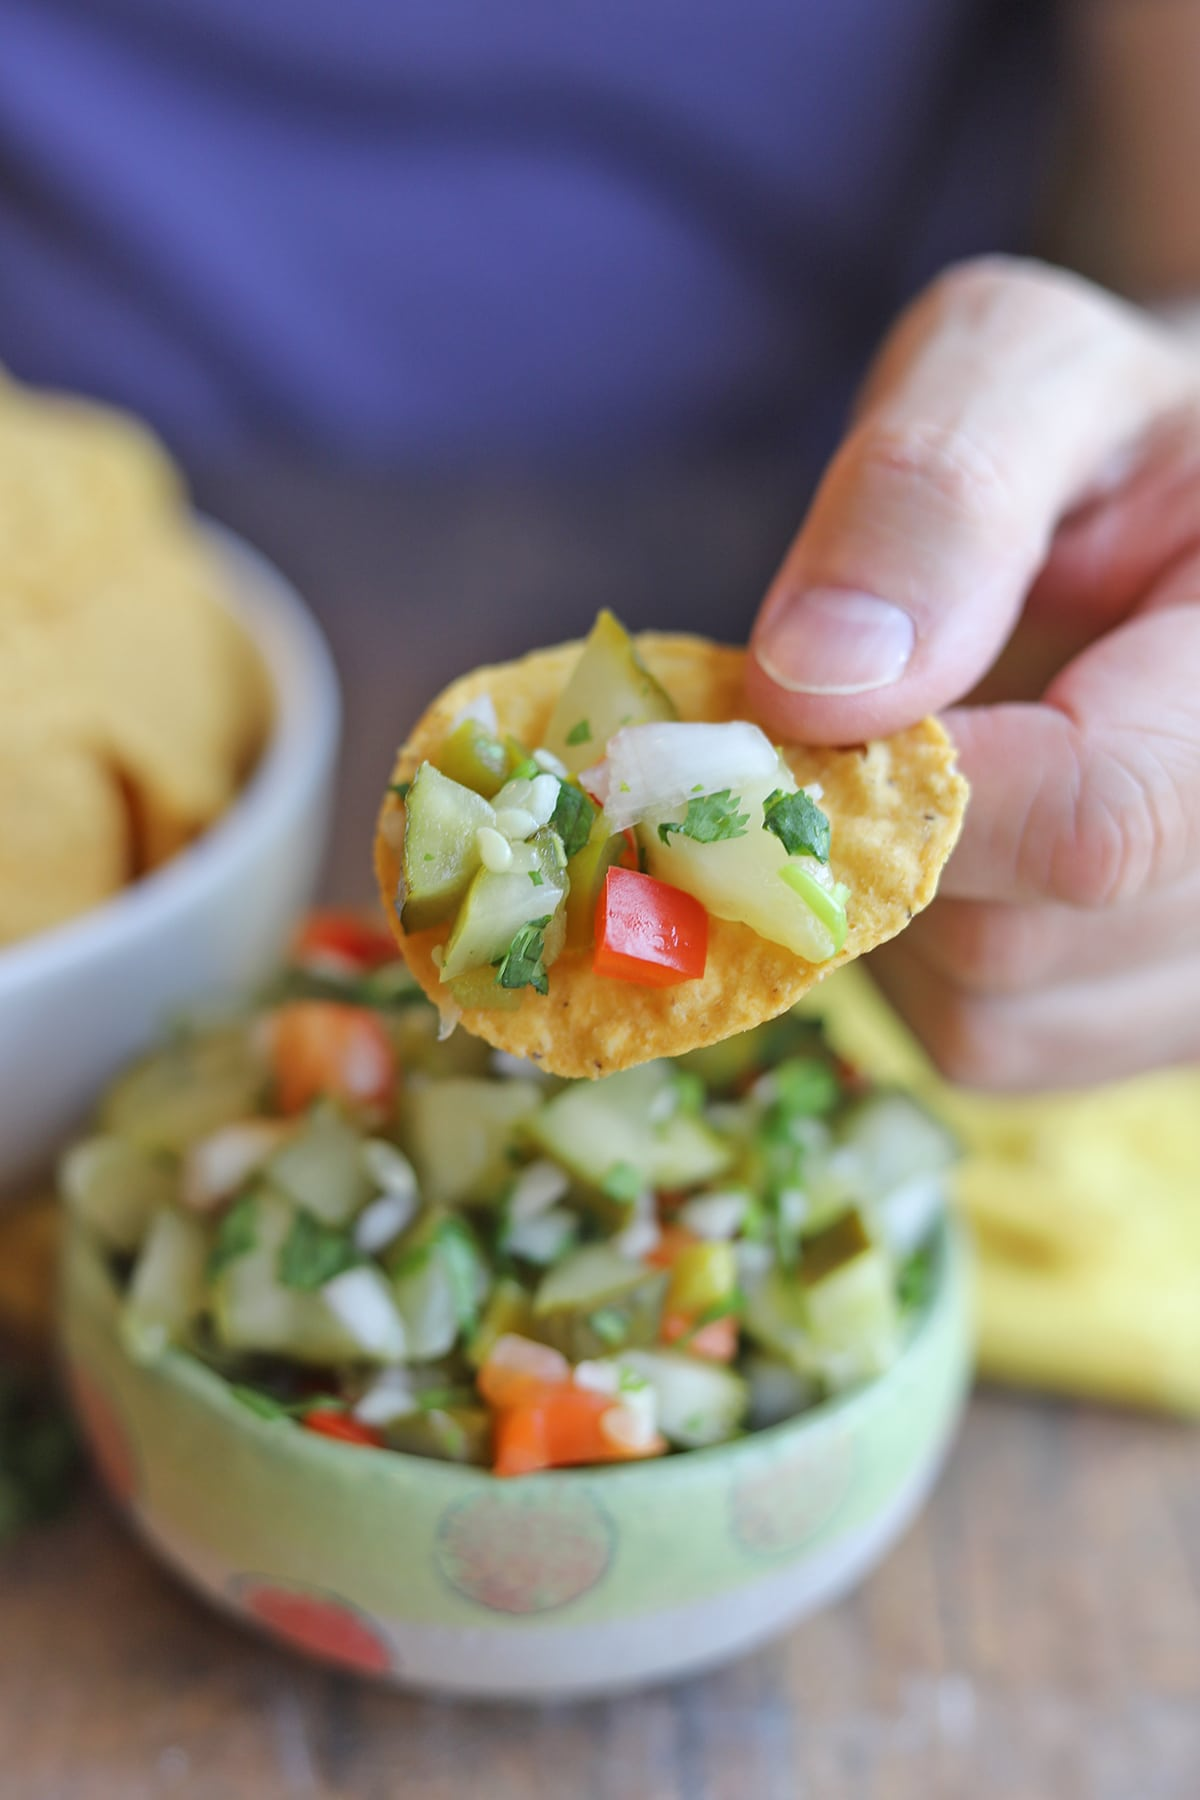 Hand holding tortilla chip with pickle salsa.